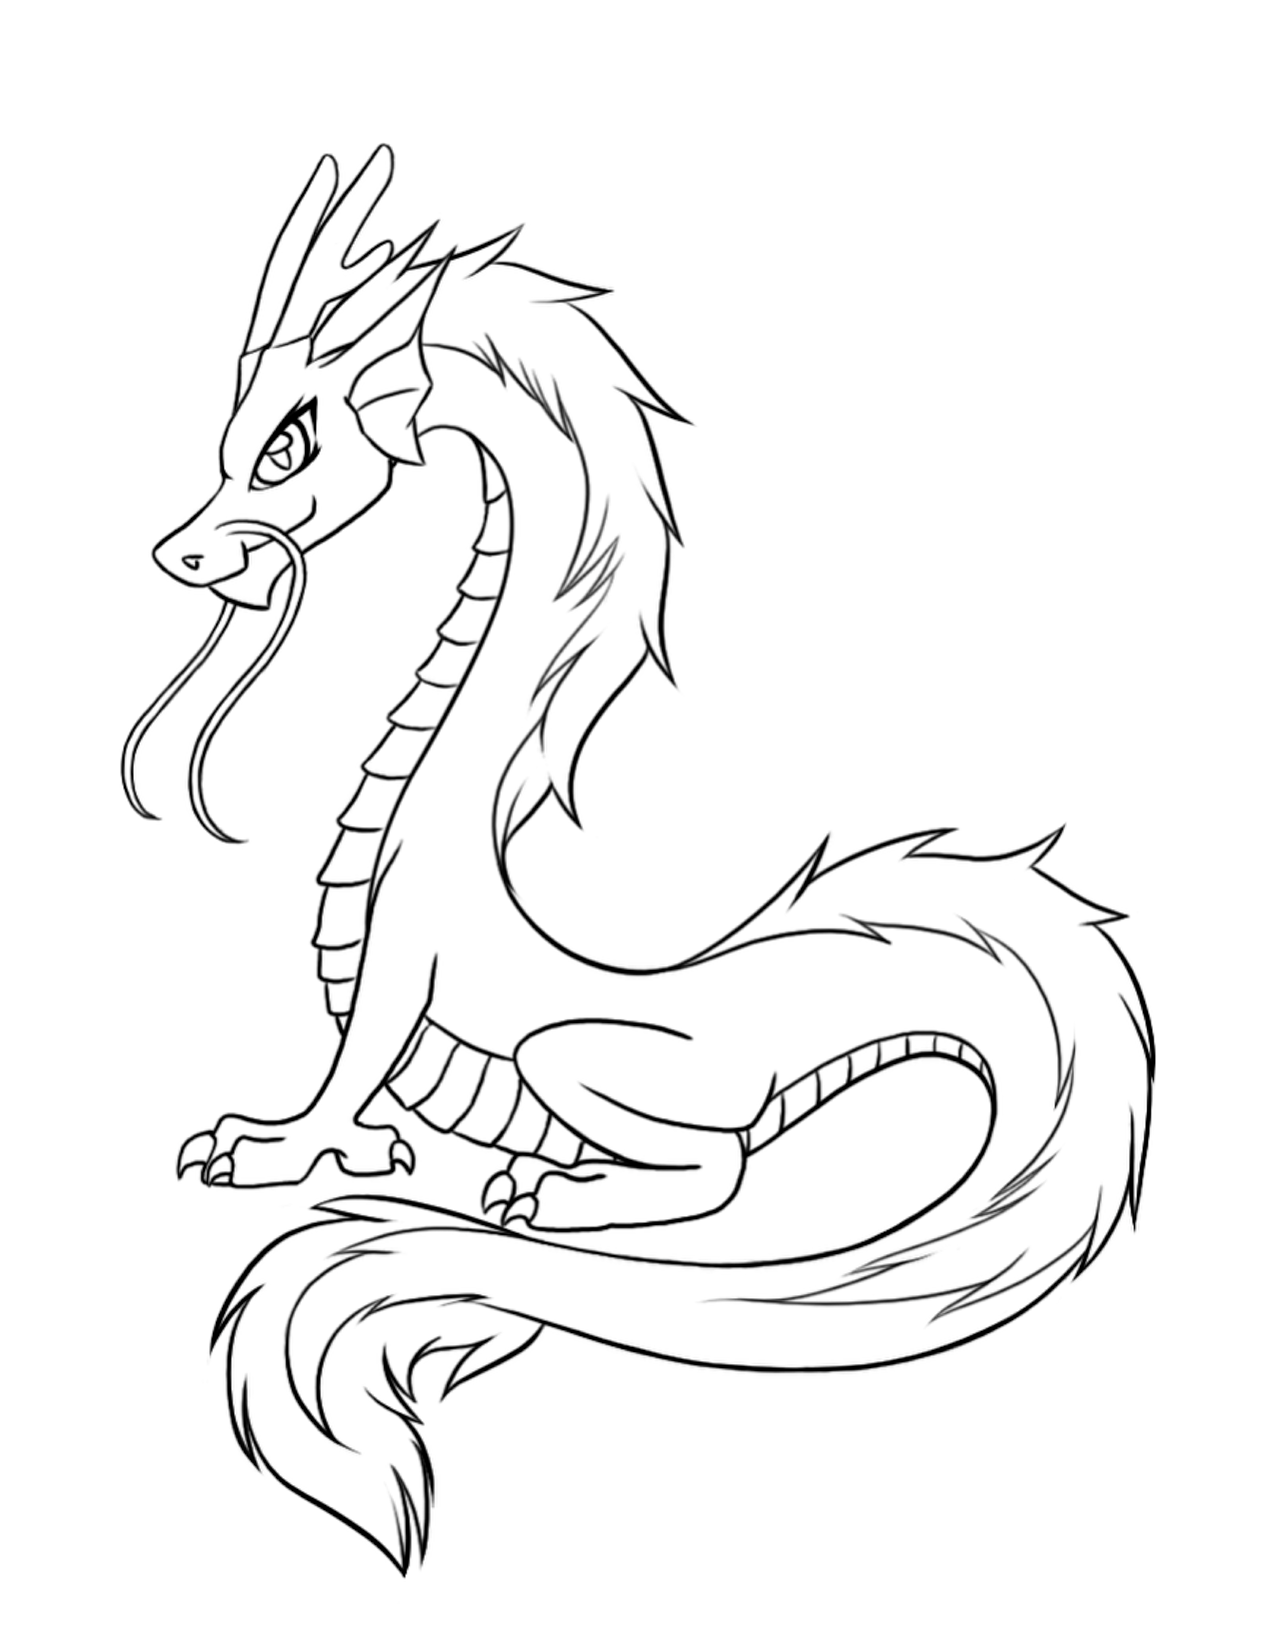 dragon images for kids lonely little dragon kids printable coloring page free dragon images for kids